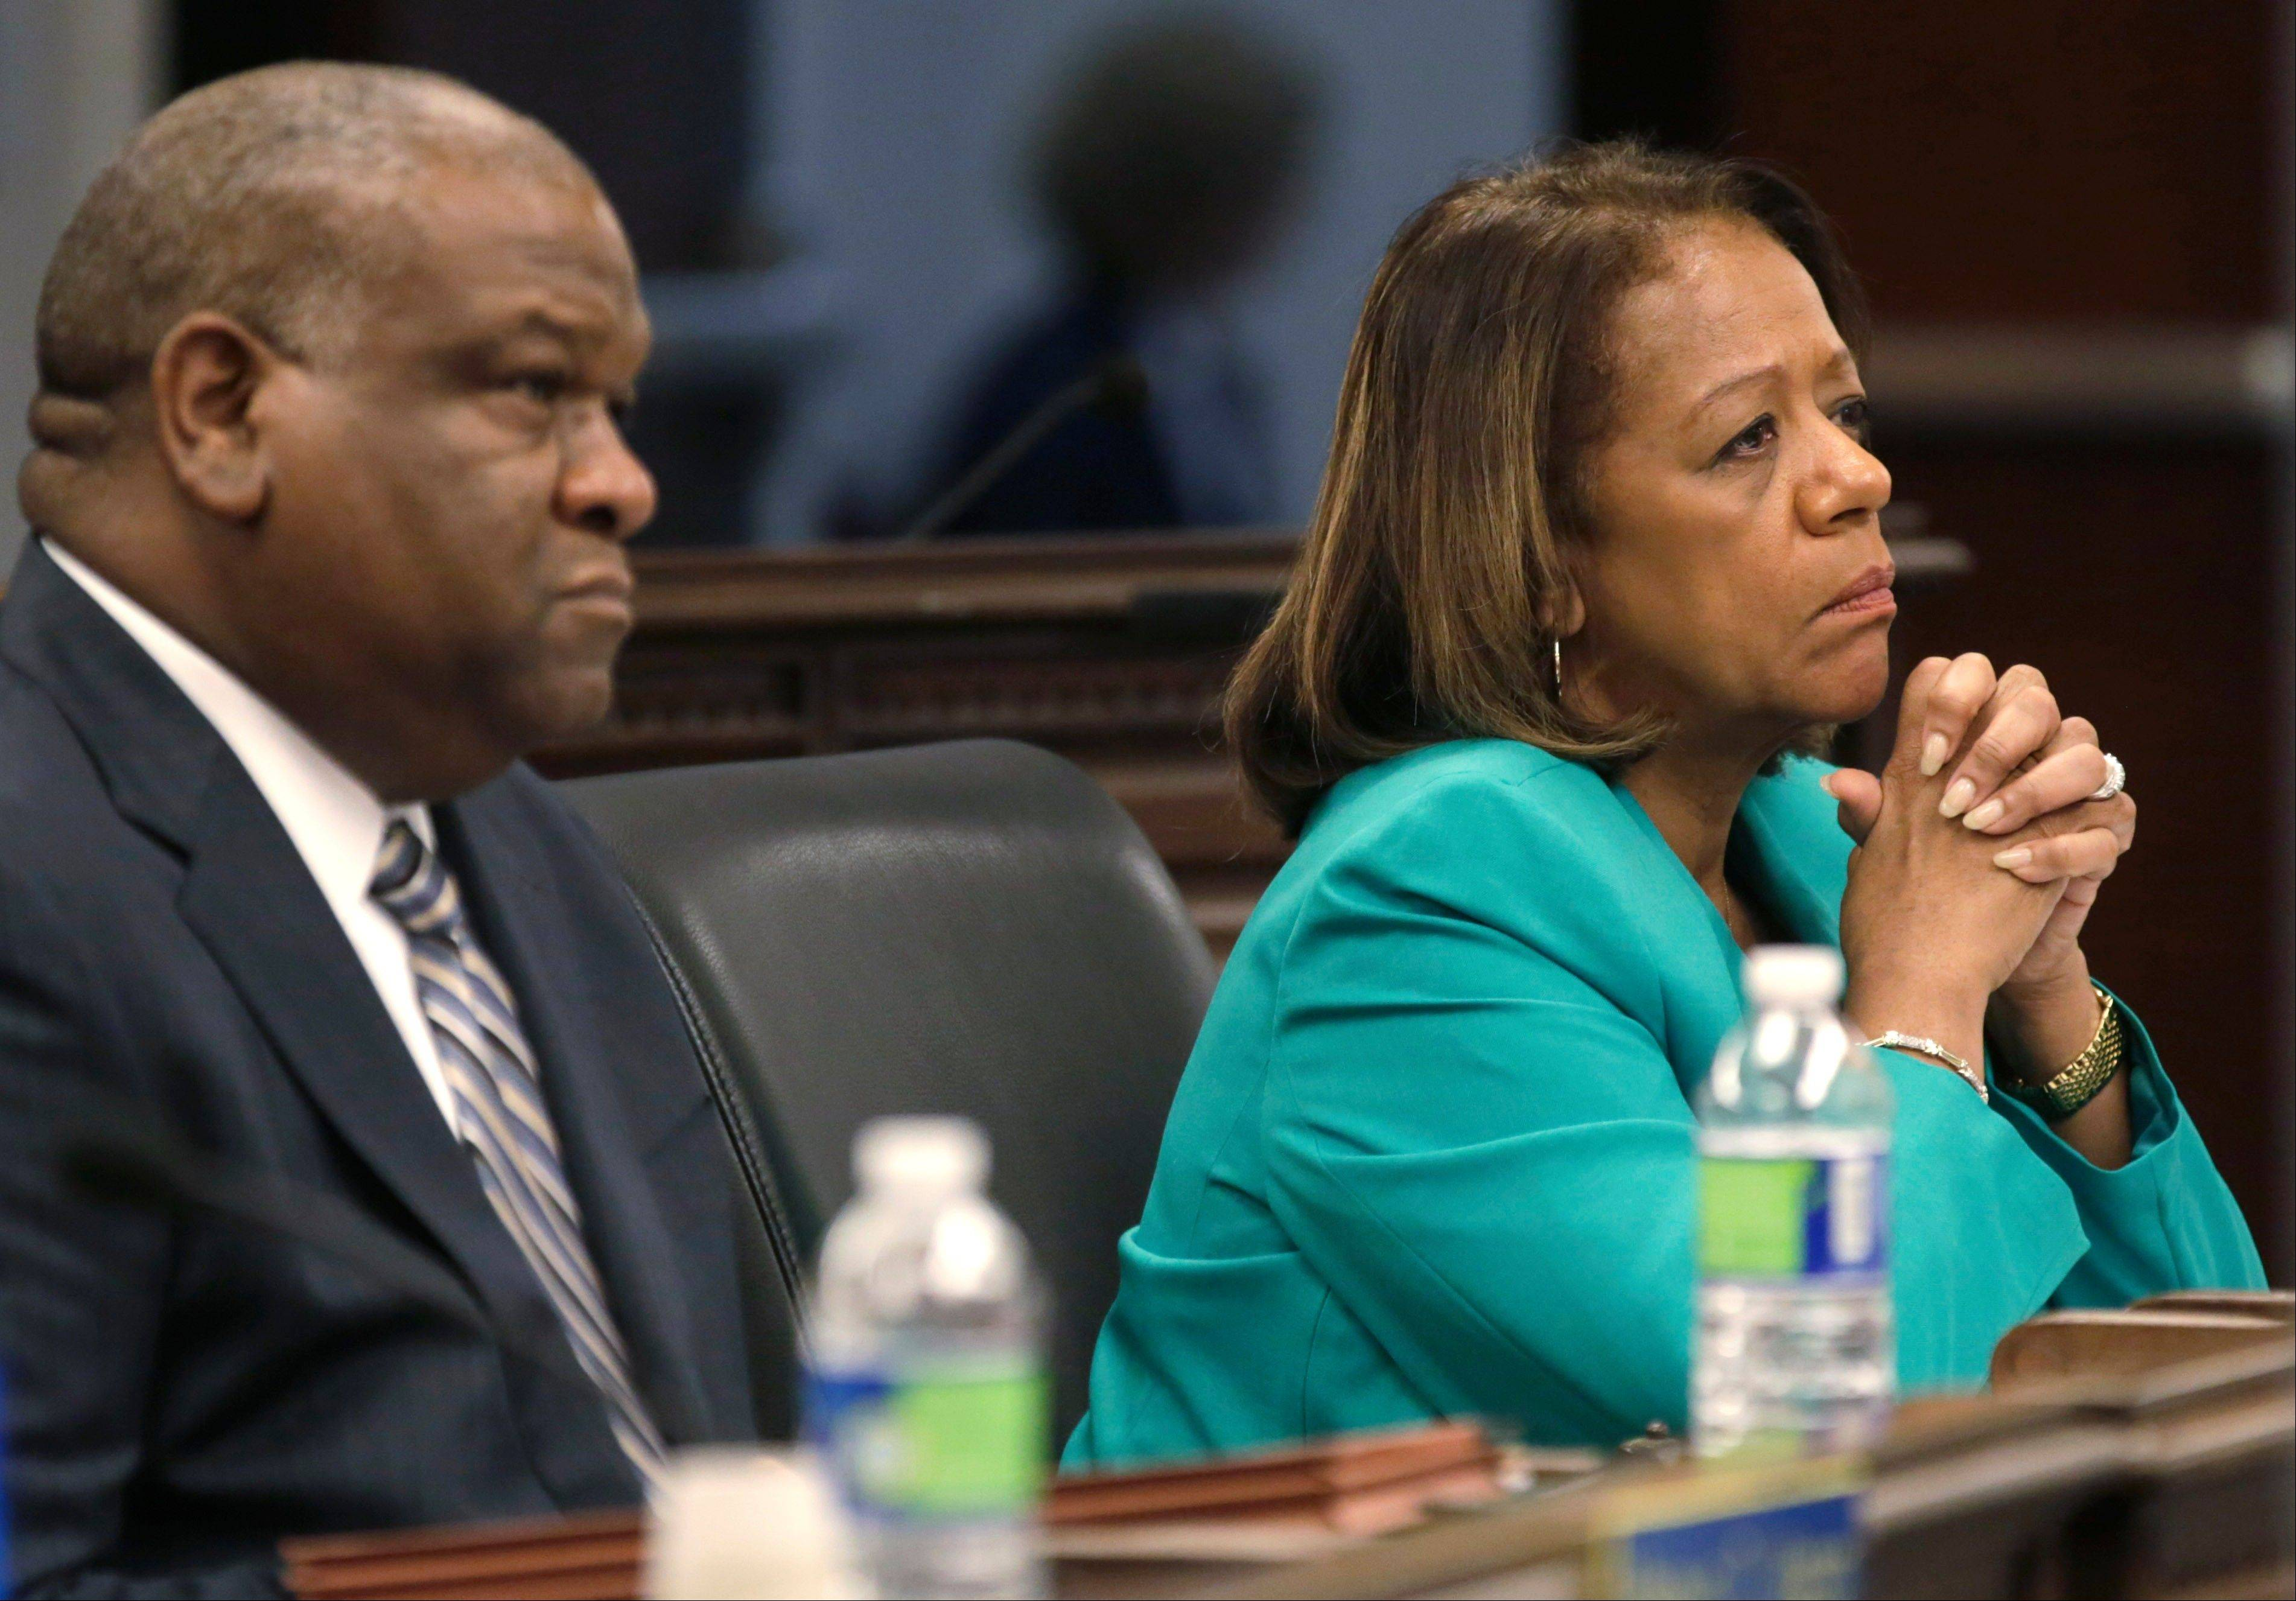 Chicago Board of Education General Counsel James Bebley and CEO Barbara Byrd-Bennett listen as Chicago Teachers Union President Karen Lewis speaks at a packed board meeting Wednesday in Chicago.